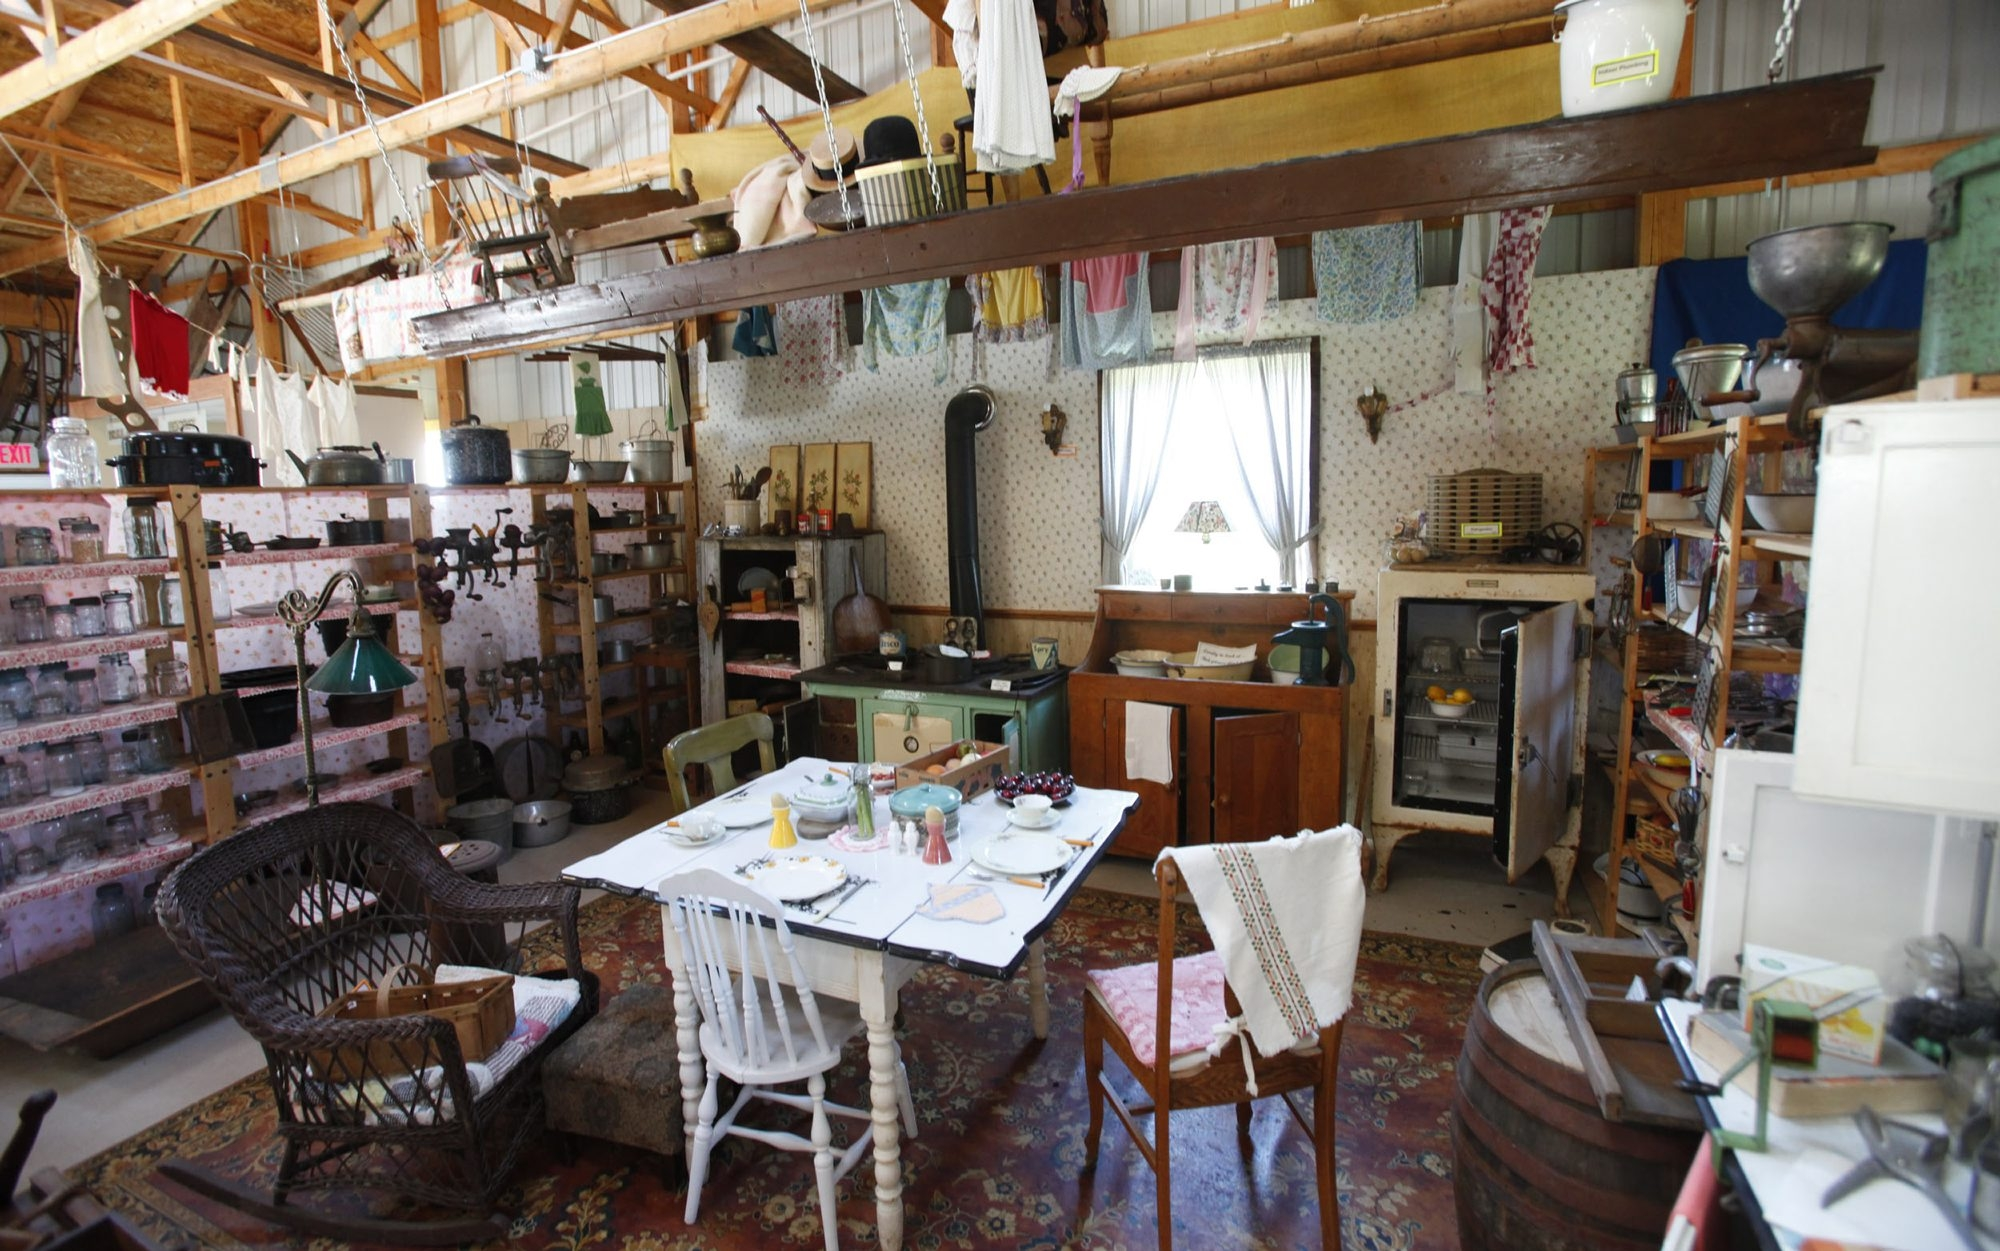 The antique kitchen at the Sanborn Area Historical Society Farm Museum.